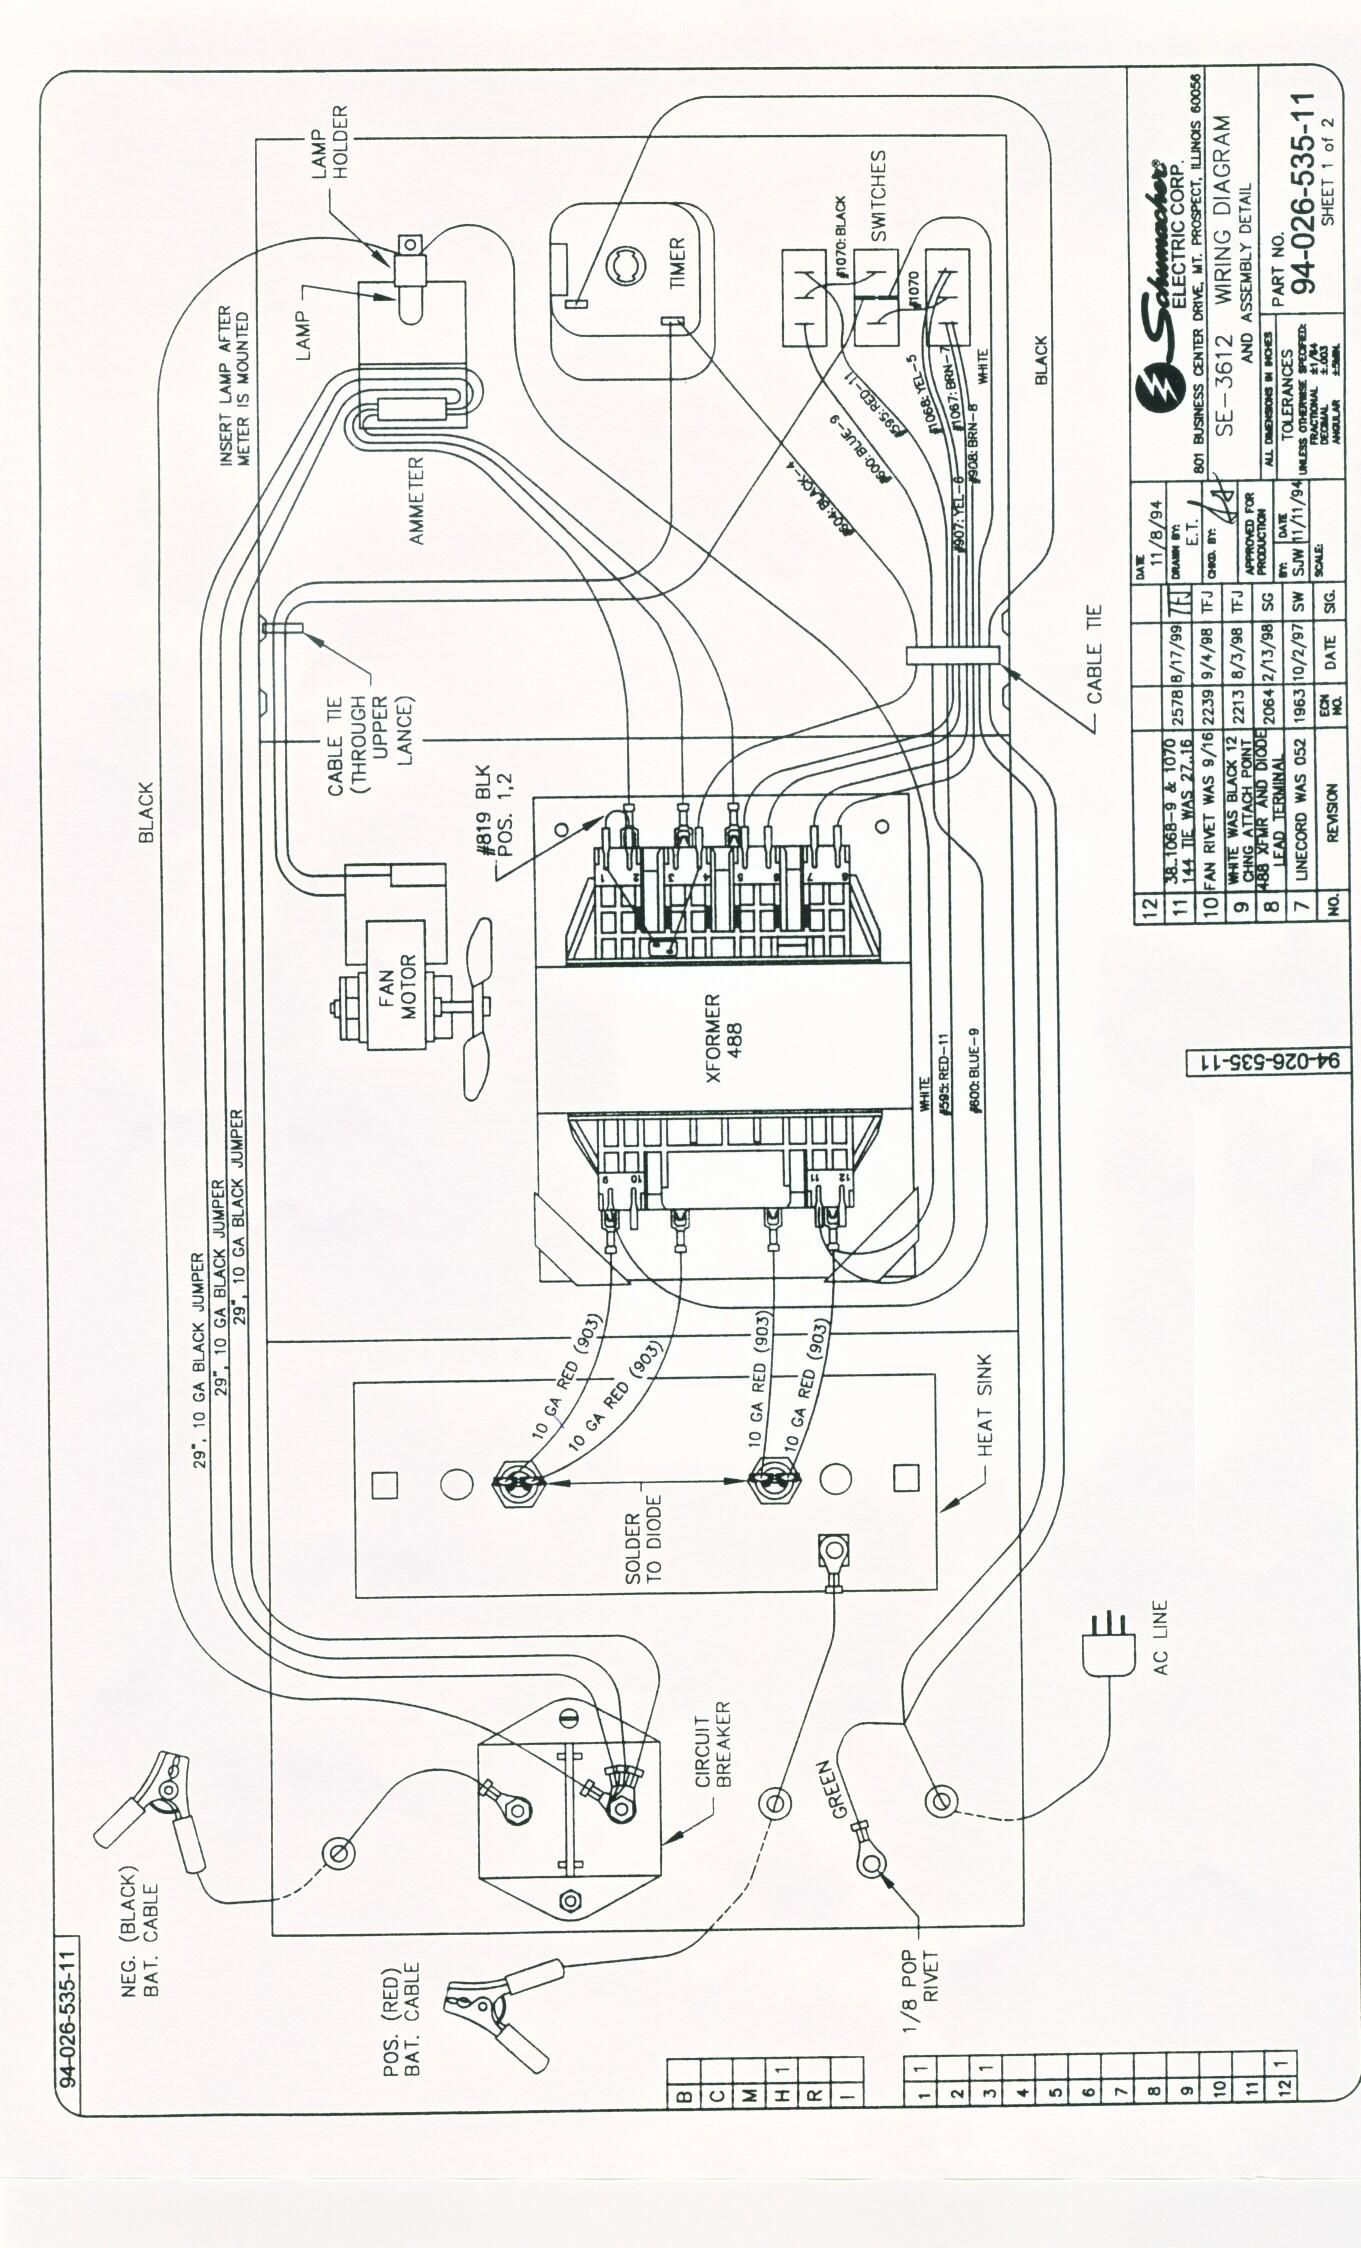 wiring diagram neededchargingdiagramjpg wiring diagram for youschumacher battery charger wiring diagram charger battery schumacher battery charger [ 1361 x 2248 Pixel ]